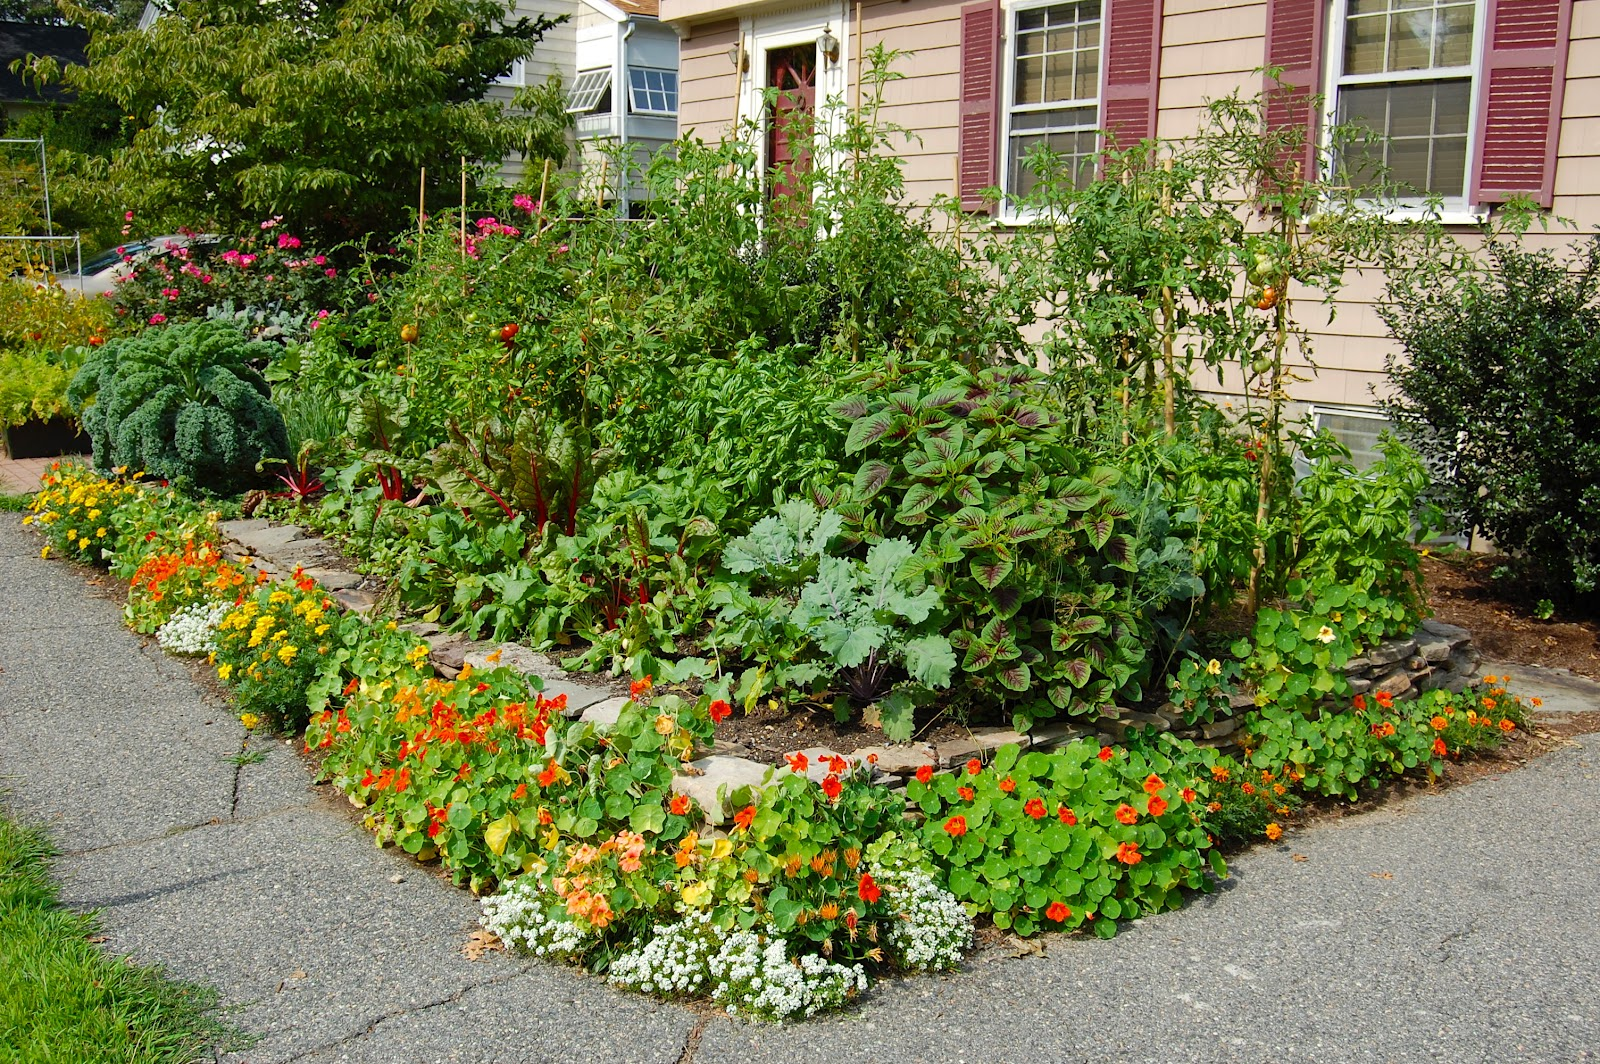 Landscaping: Landscaping Ideas For Front Yard Edible Gardens